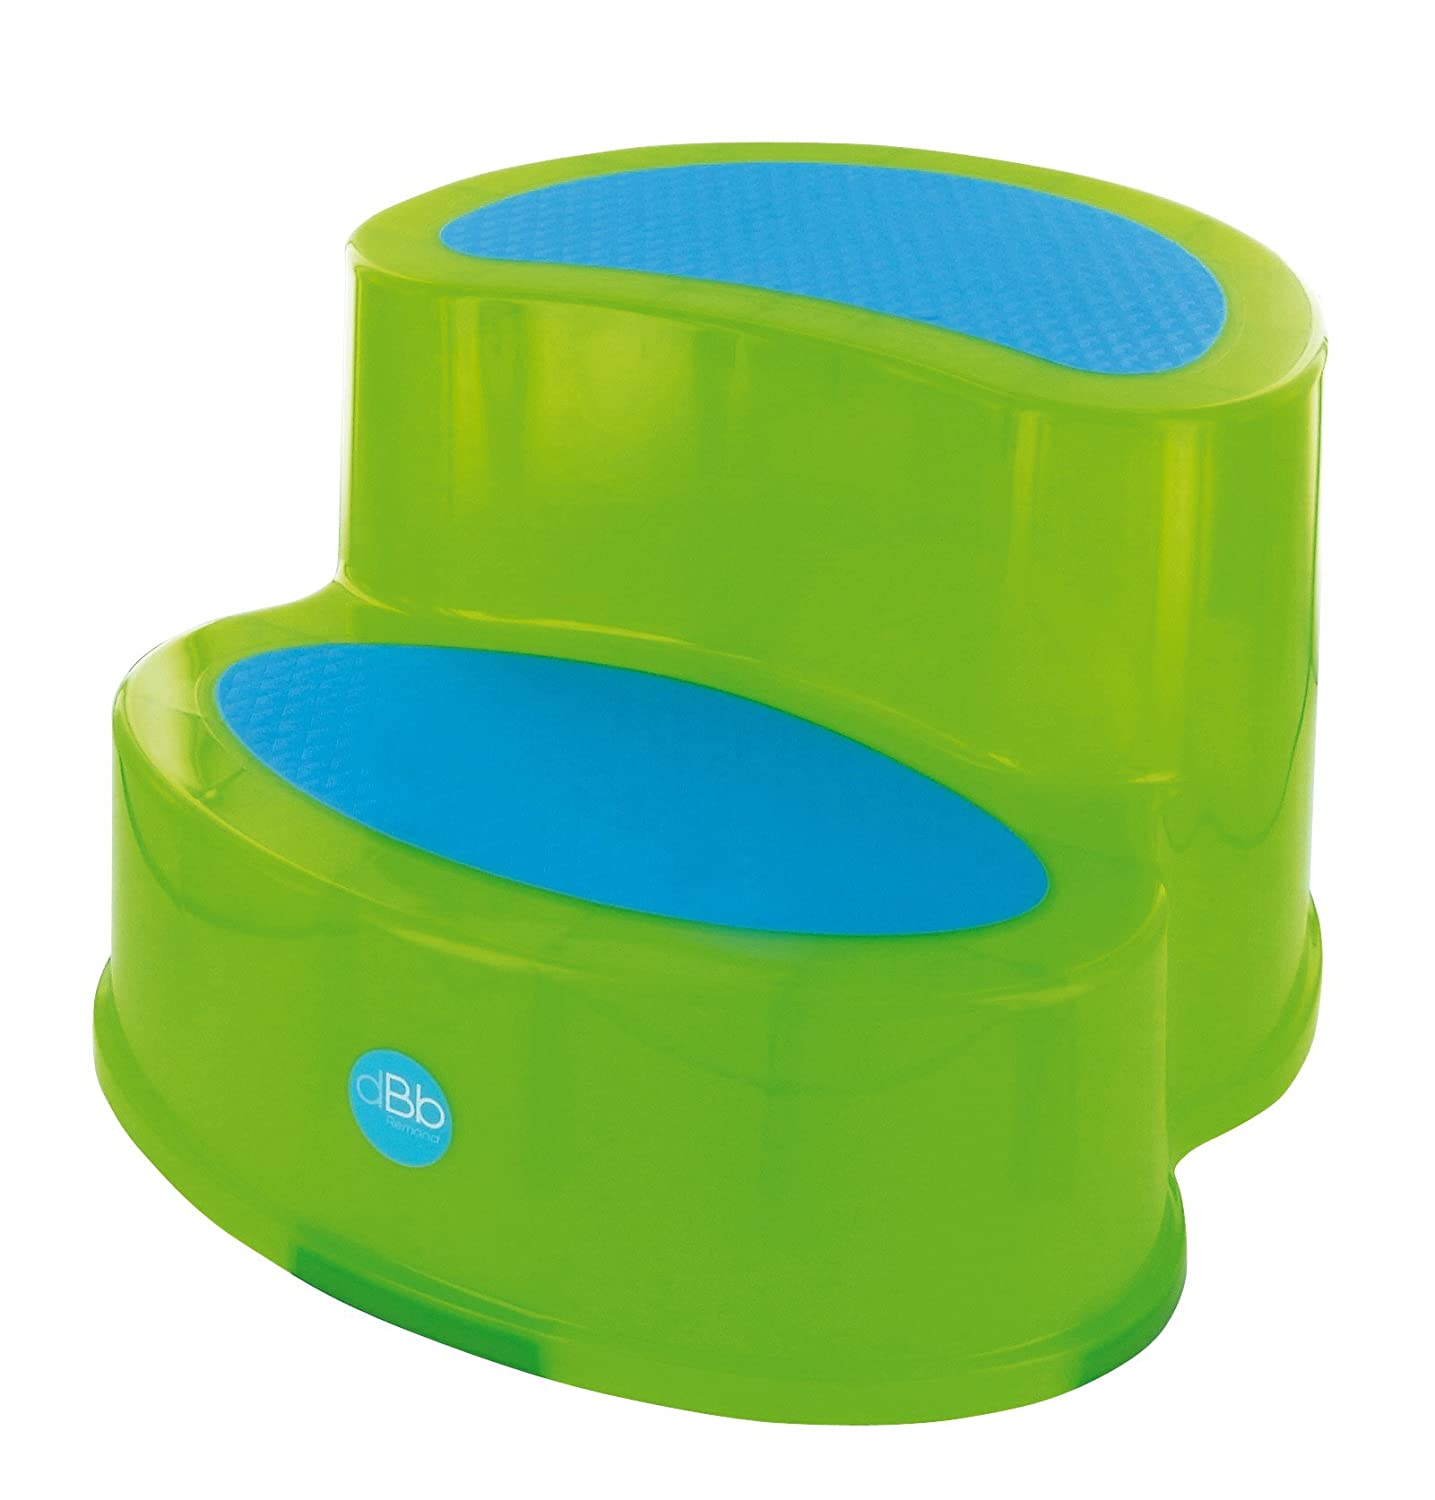 color verde Escabel infantil antideslizante DBD Remond 307009